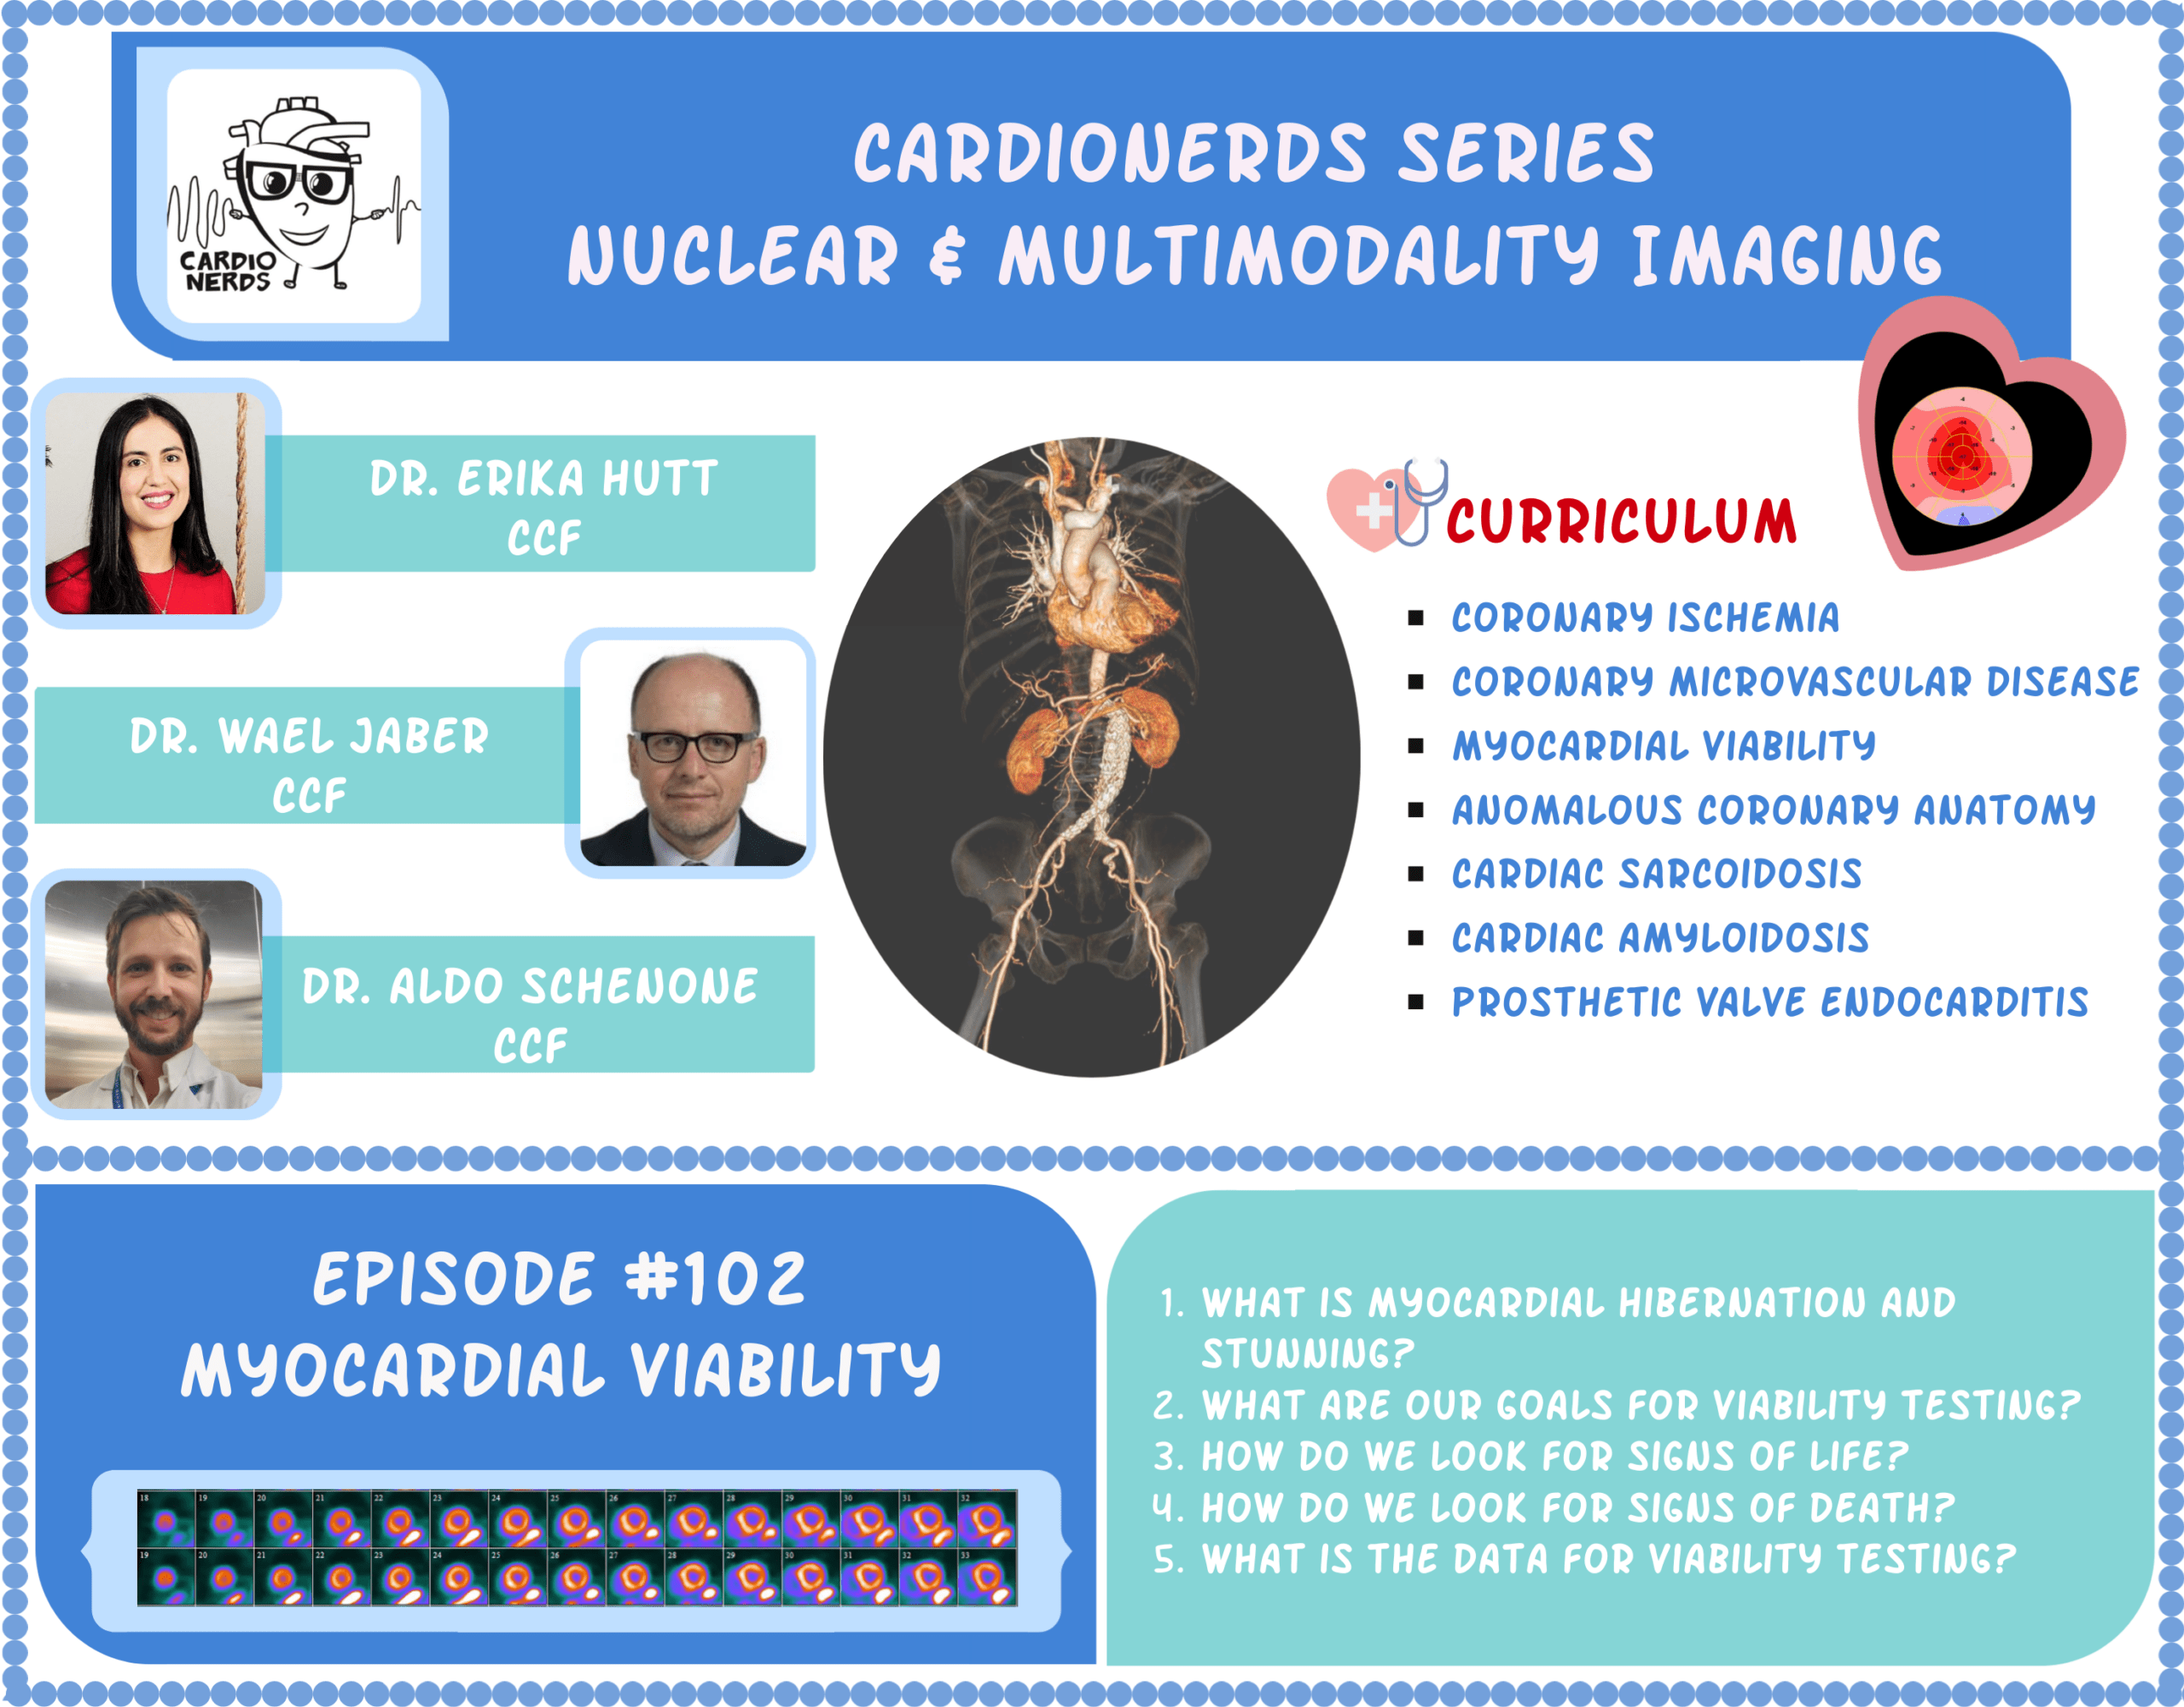 102. Nuclear and Multimodality Imaging: Myocardial Viability